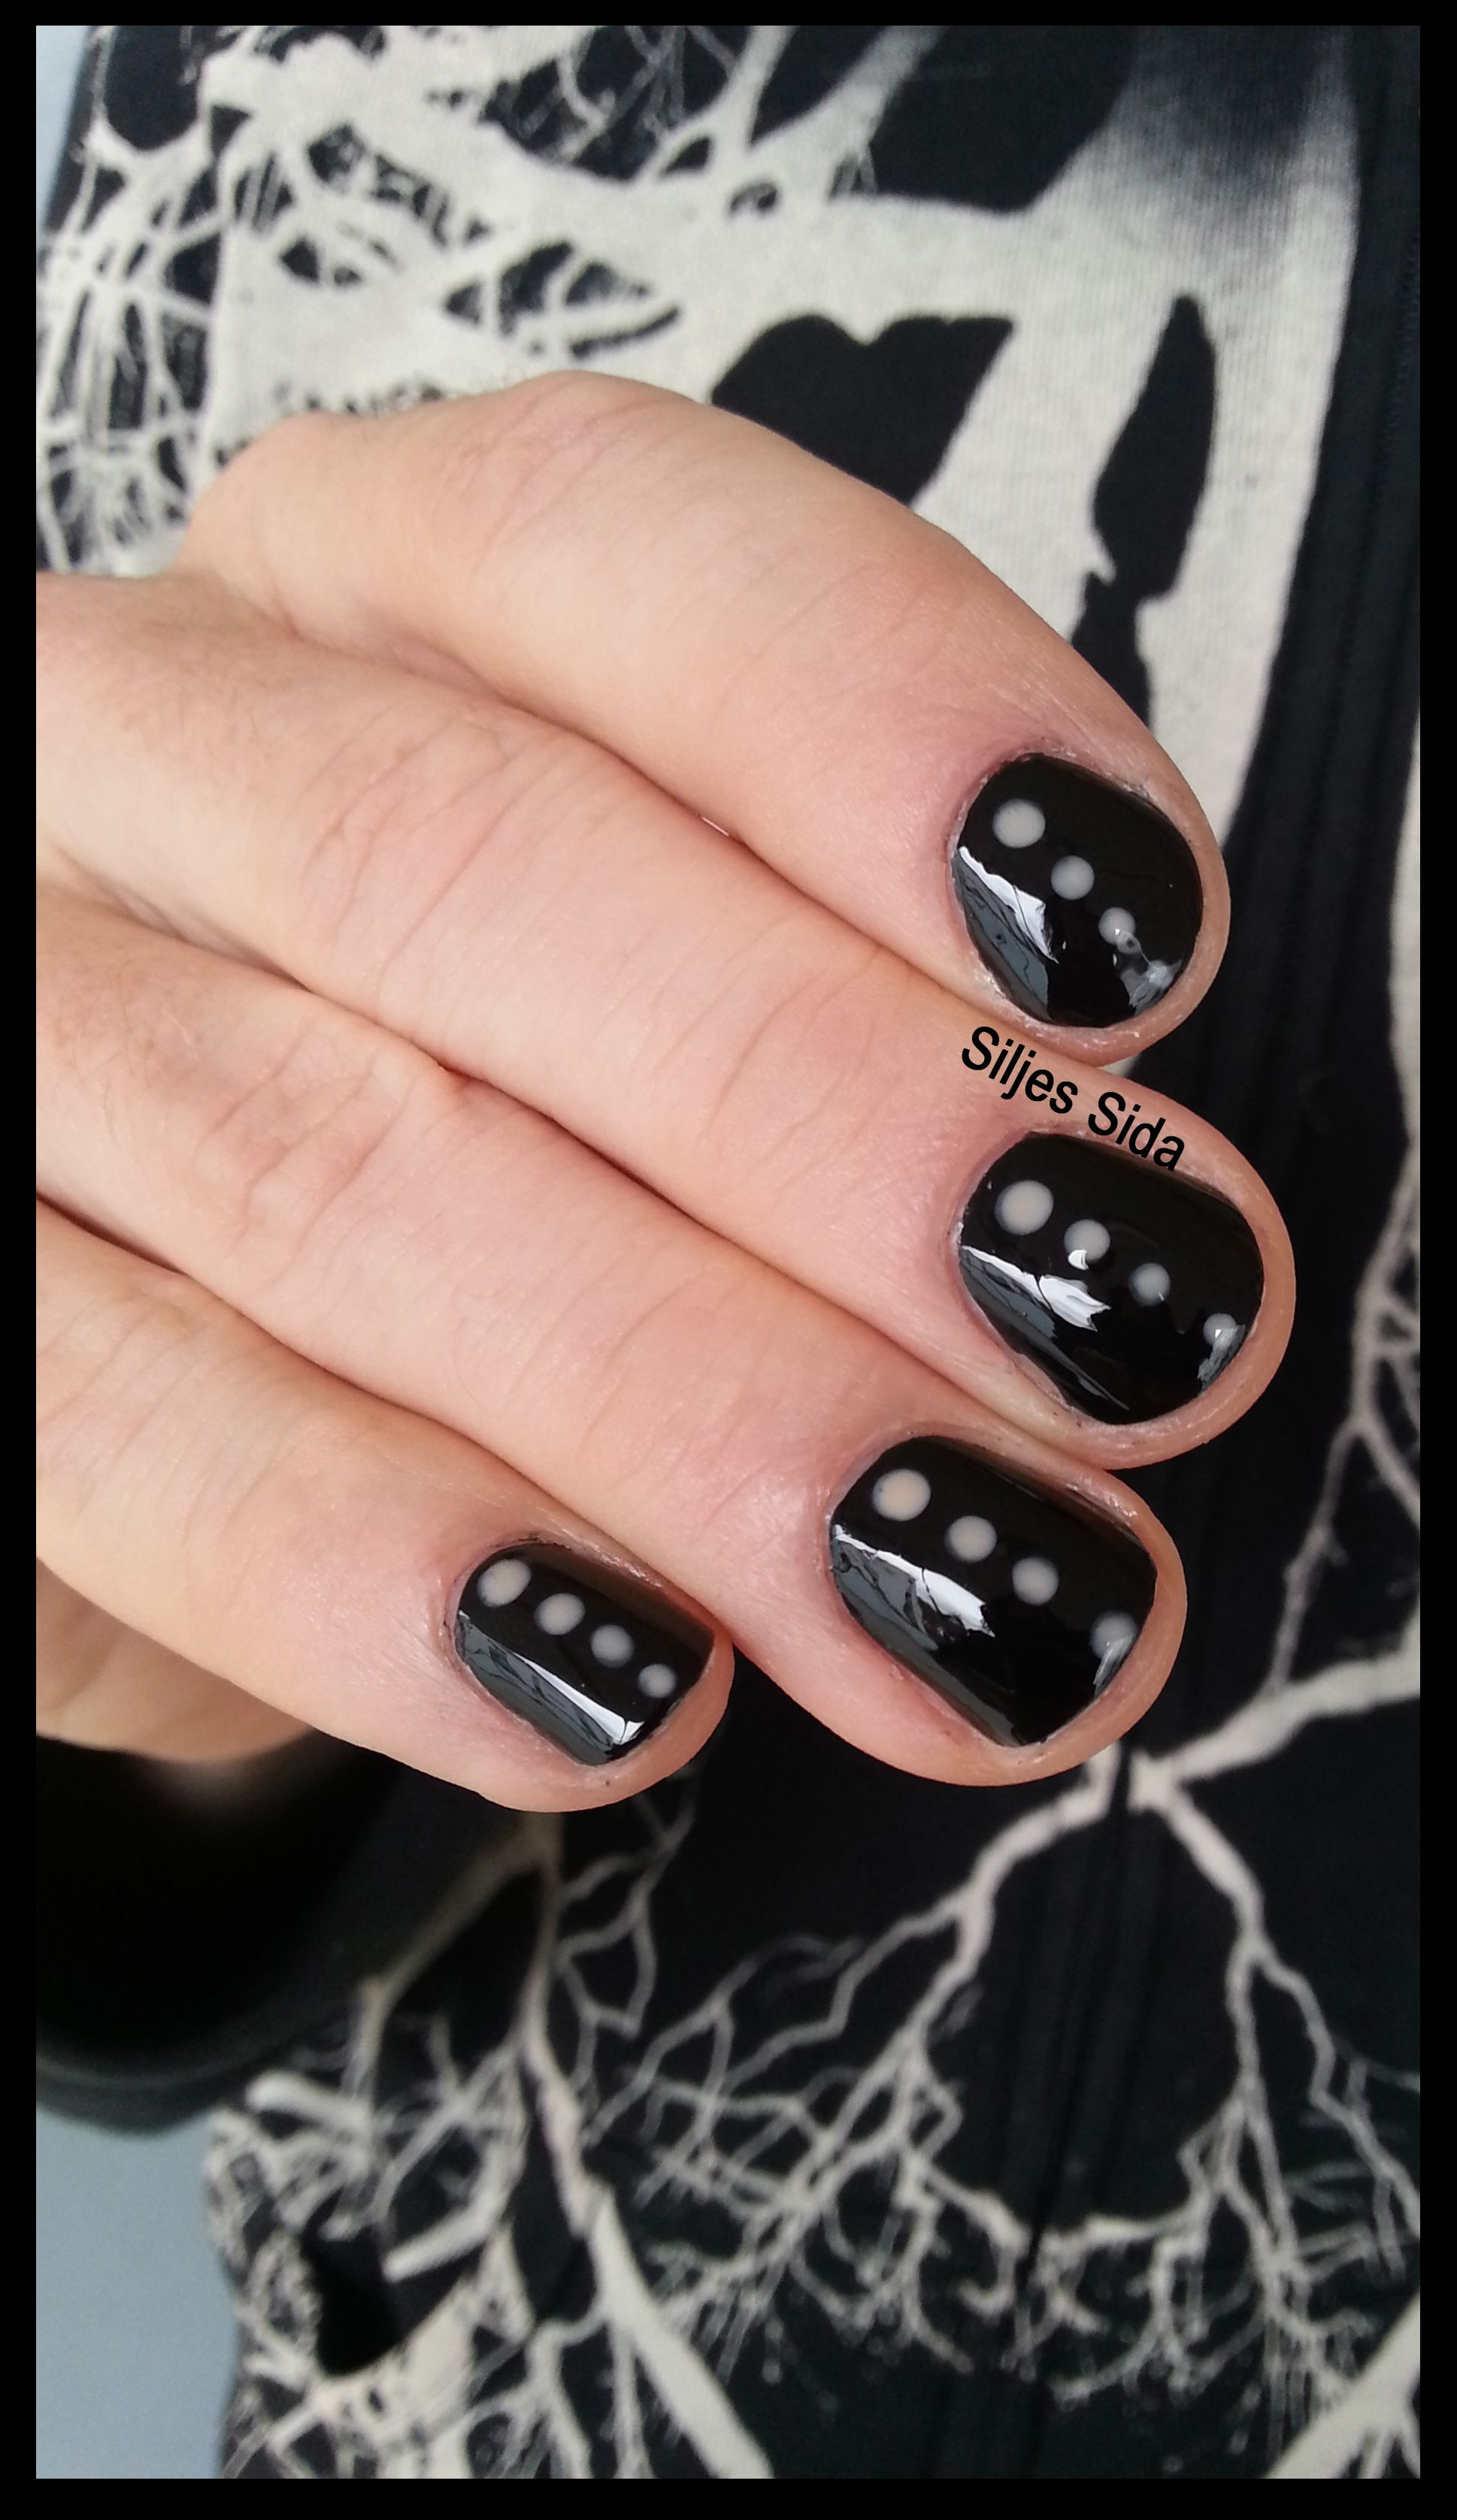 Simple nail art on men, OPI Lady in black and dotts with OPI Samoan ...